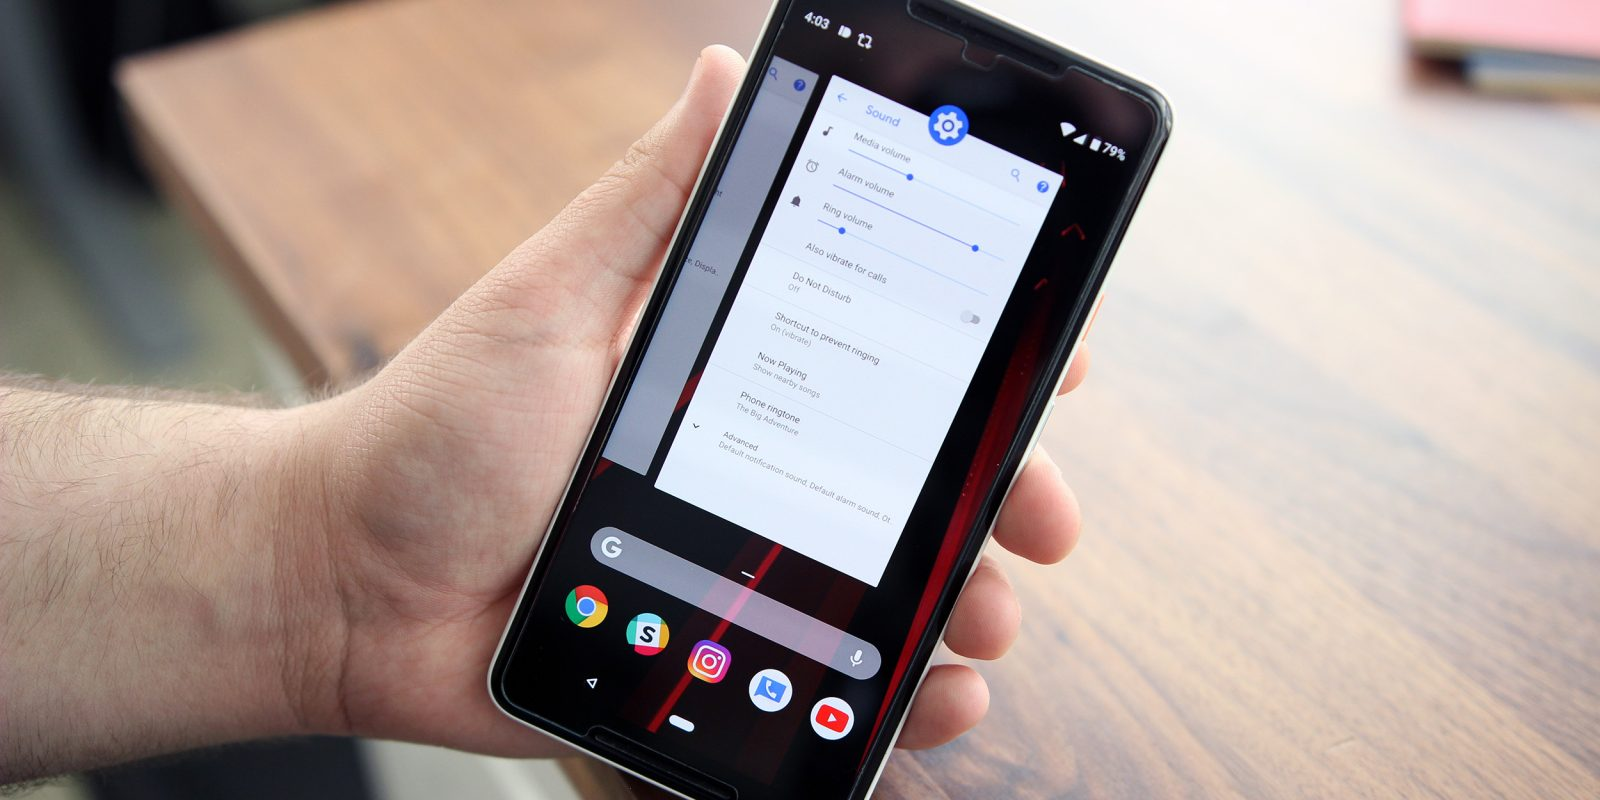 Google confirms return of 'Clear all' button to Recents menu